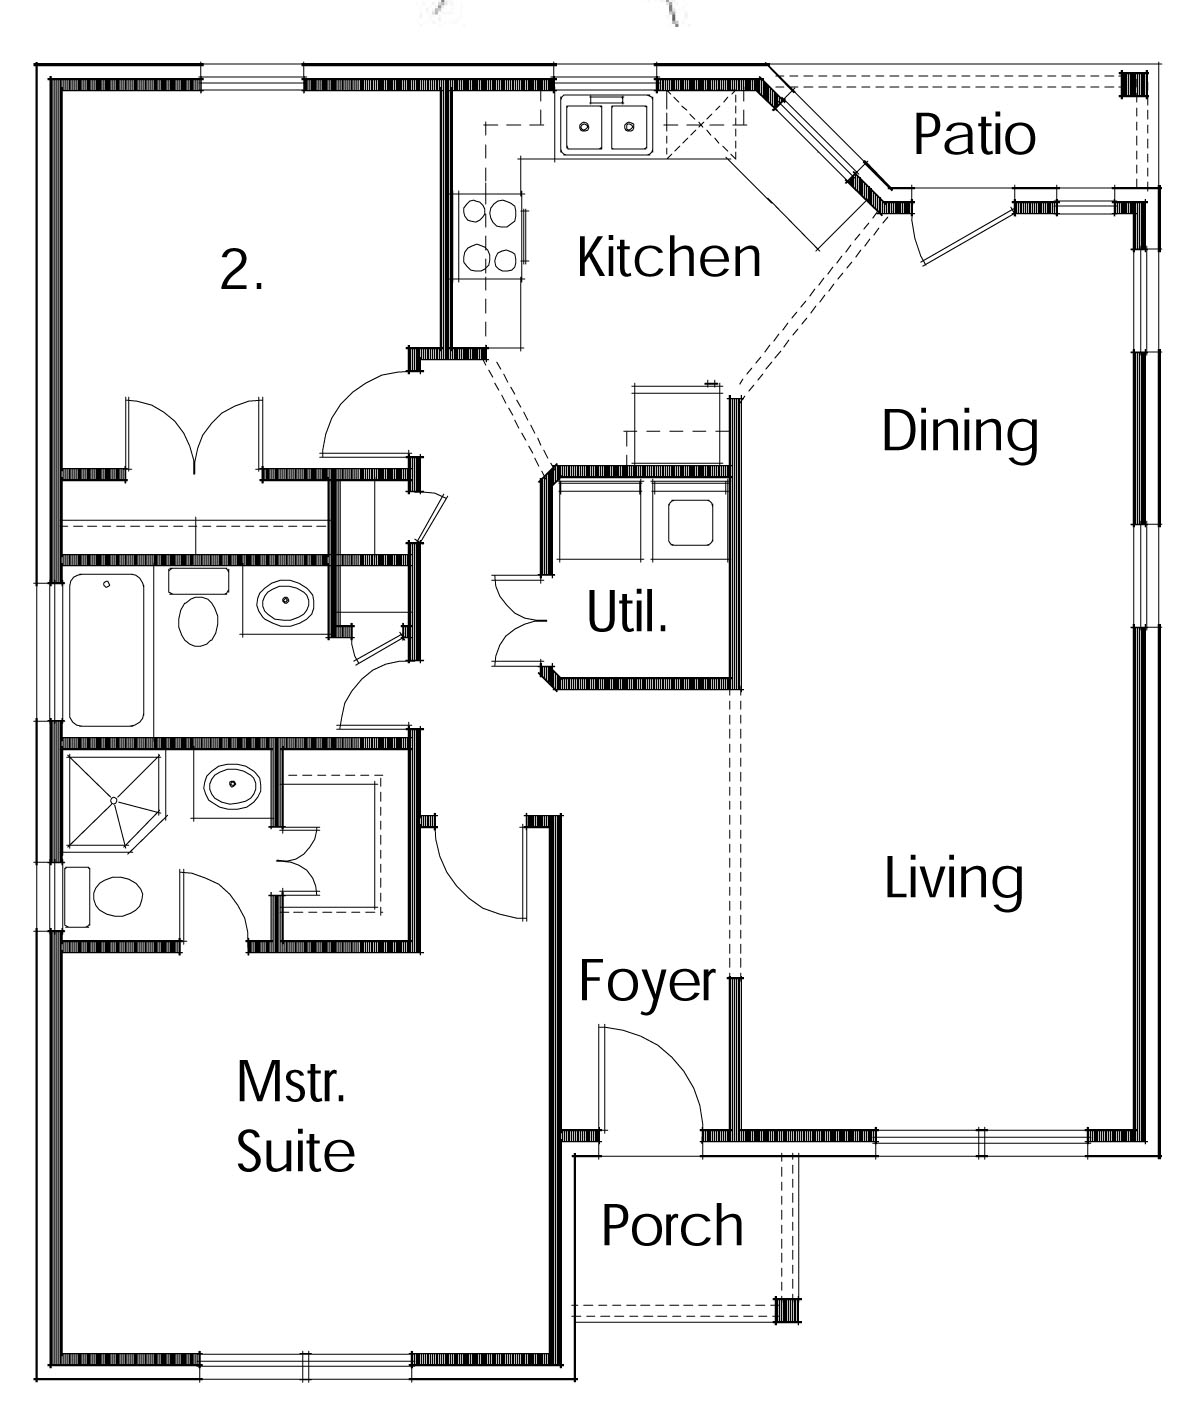 Small houses house plans and home design on pinterest for Simple home plans free